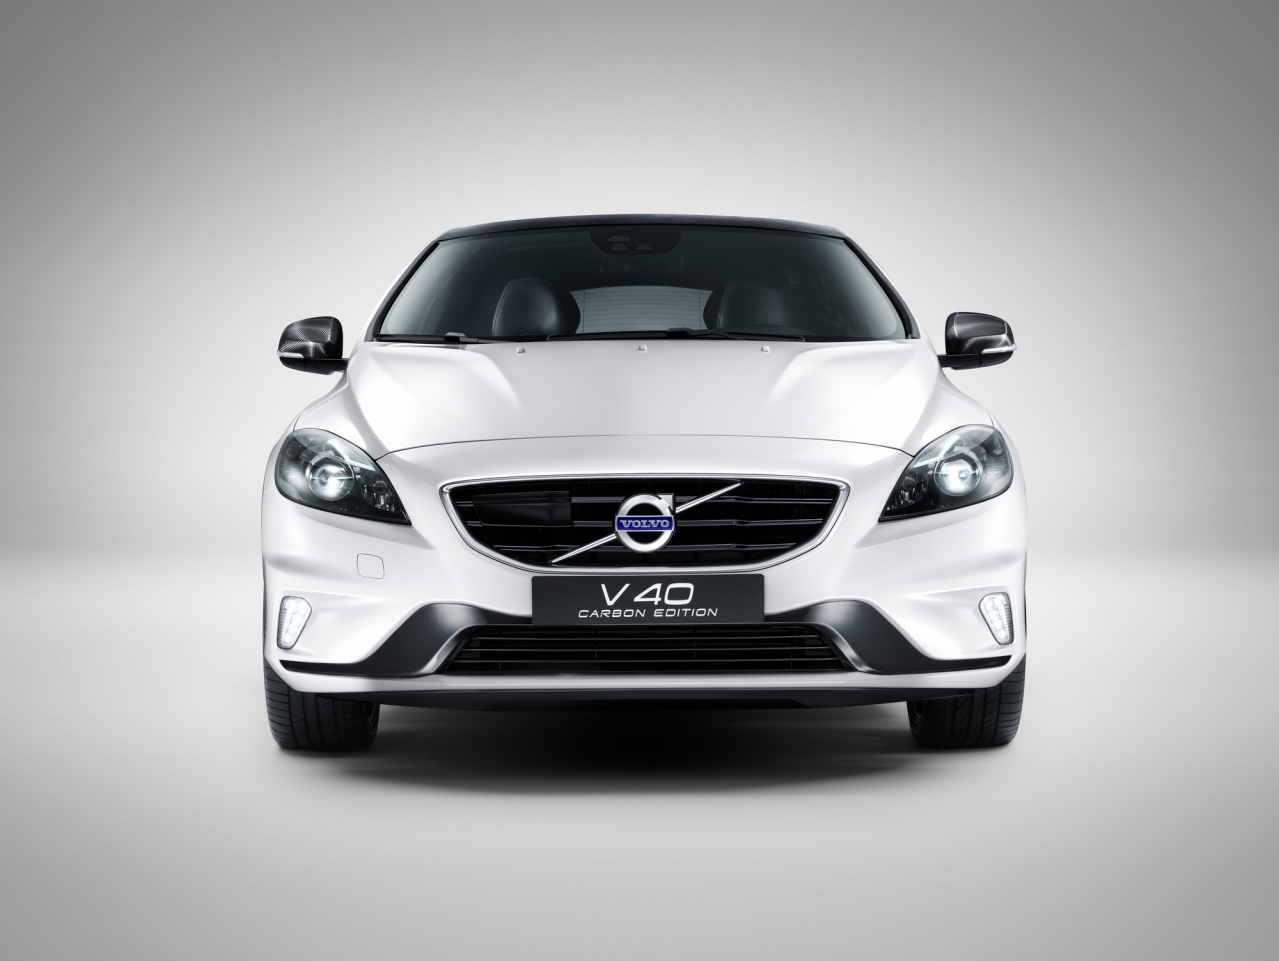 volvo v40 carbon edition une s rie tr s exclusive l 39 argus. Black Bedroom Furniture Sets. Home Design Ideas